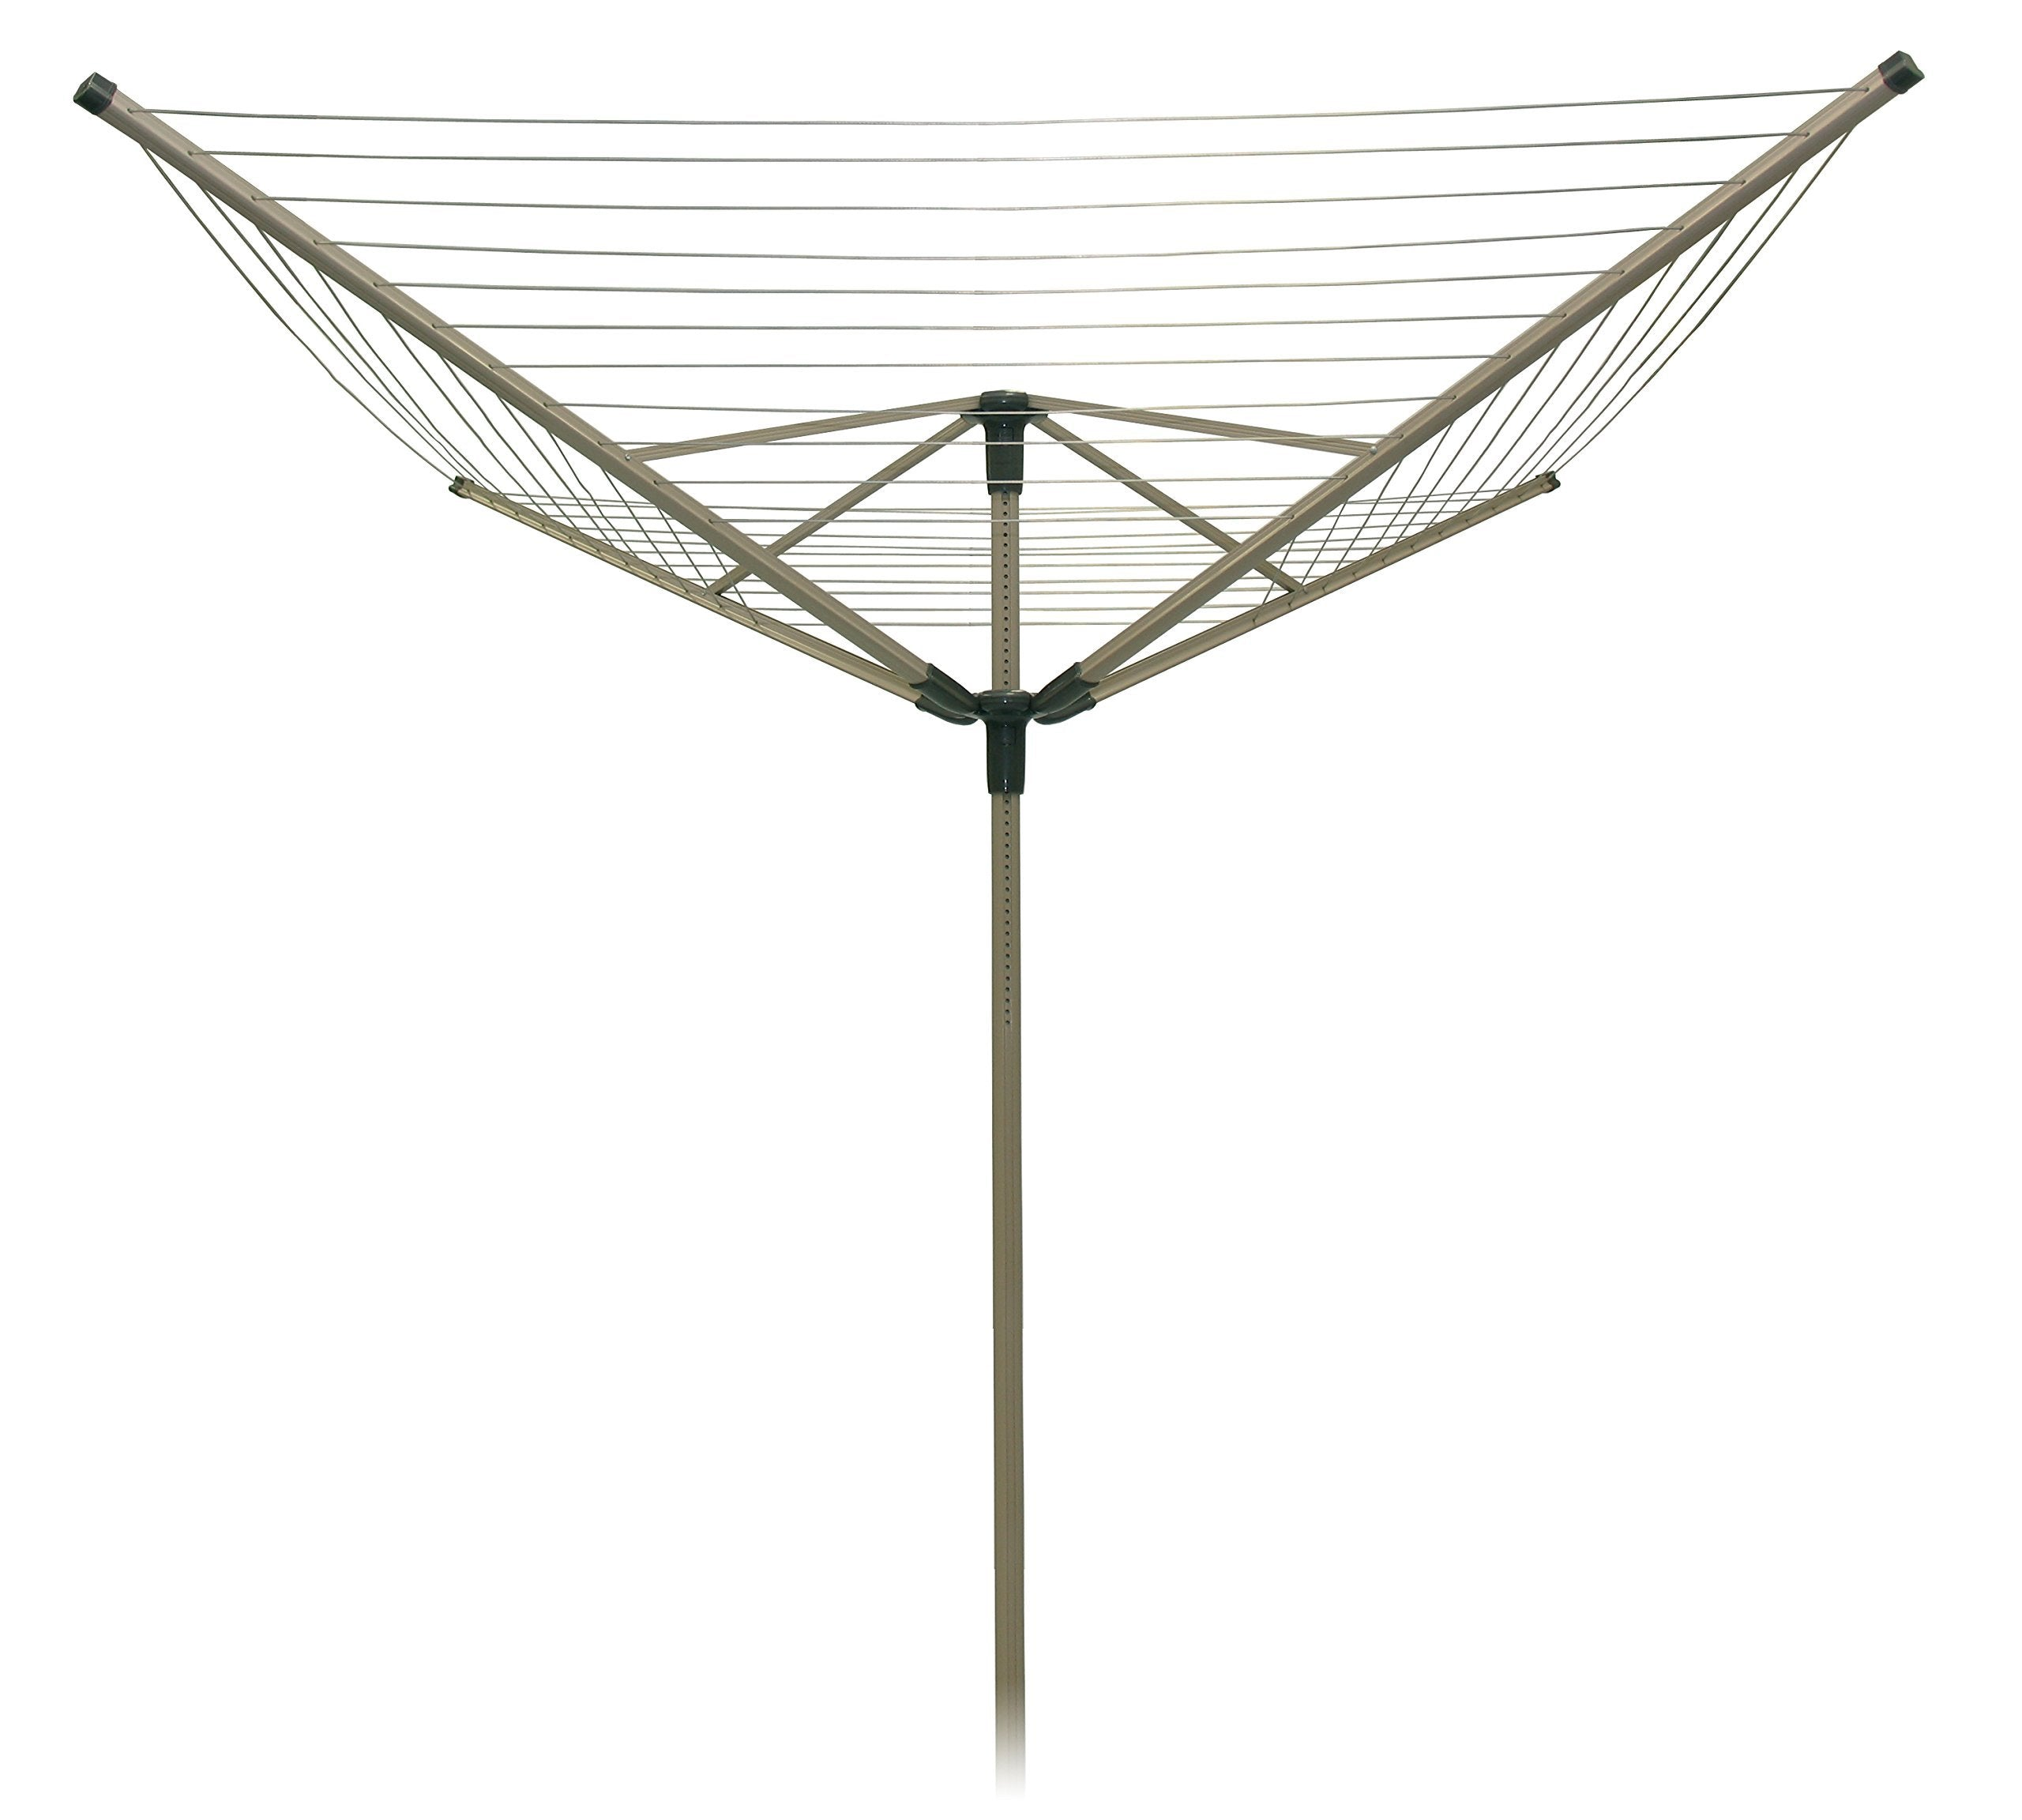 Strata Outdoor Rotary Dryer Clothes Line (194', Sahara Beige)